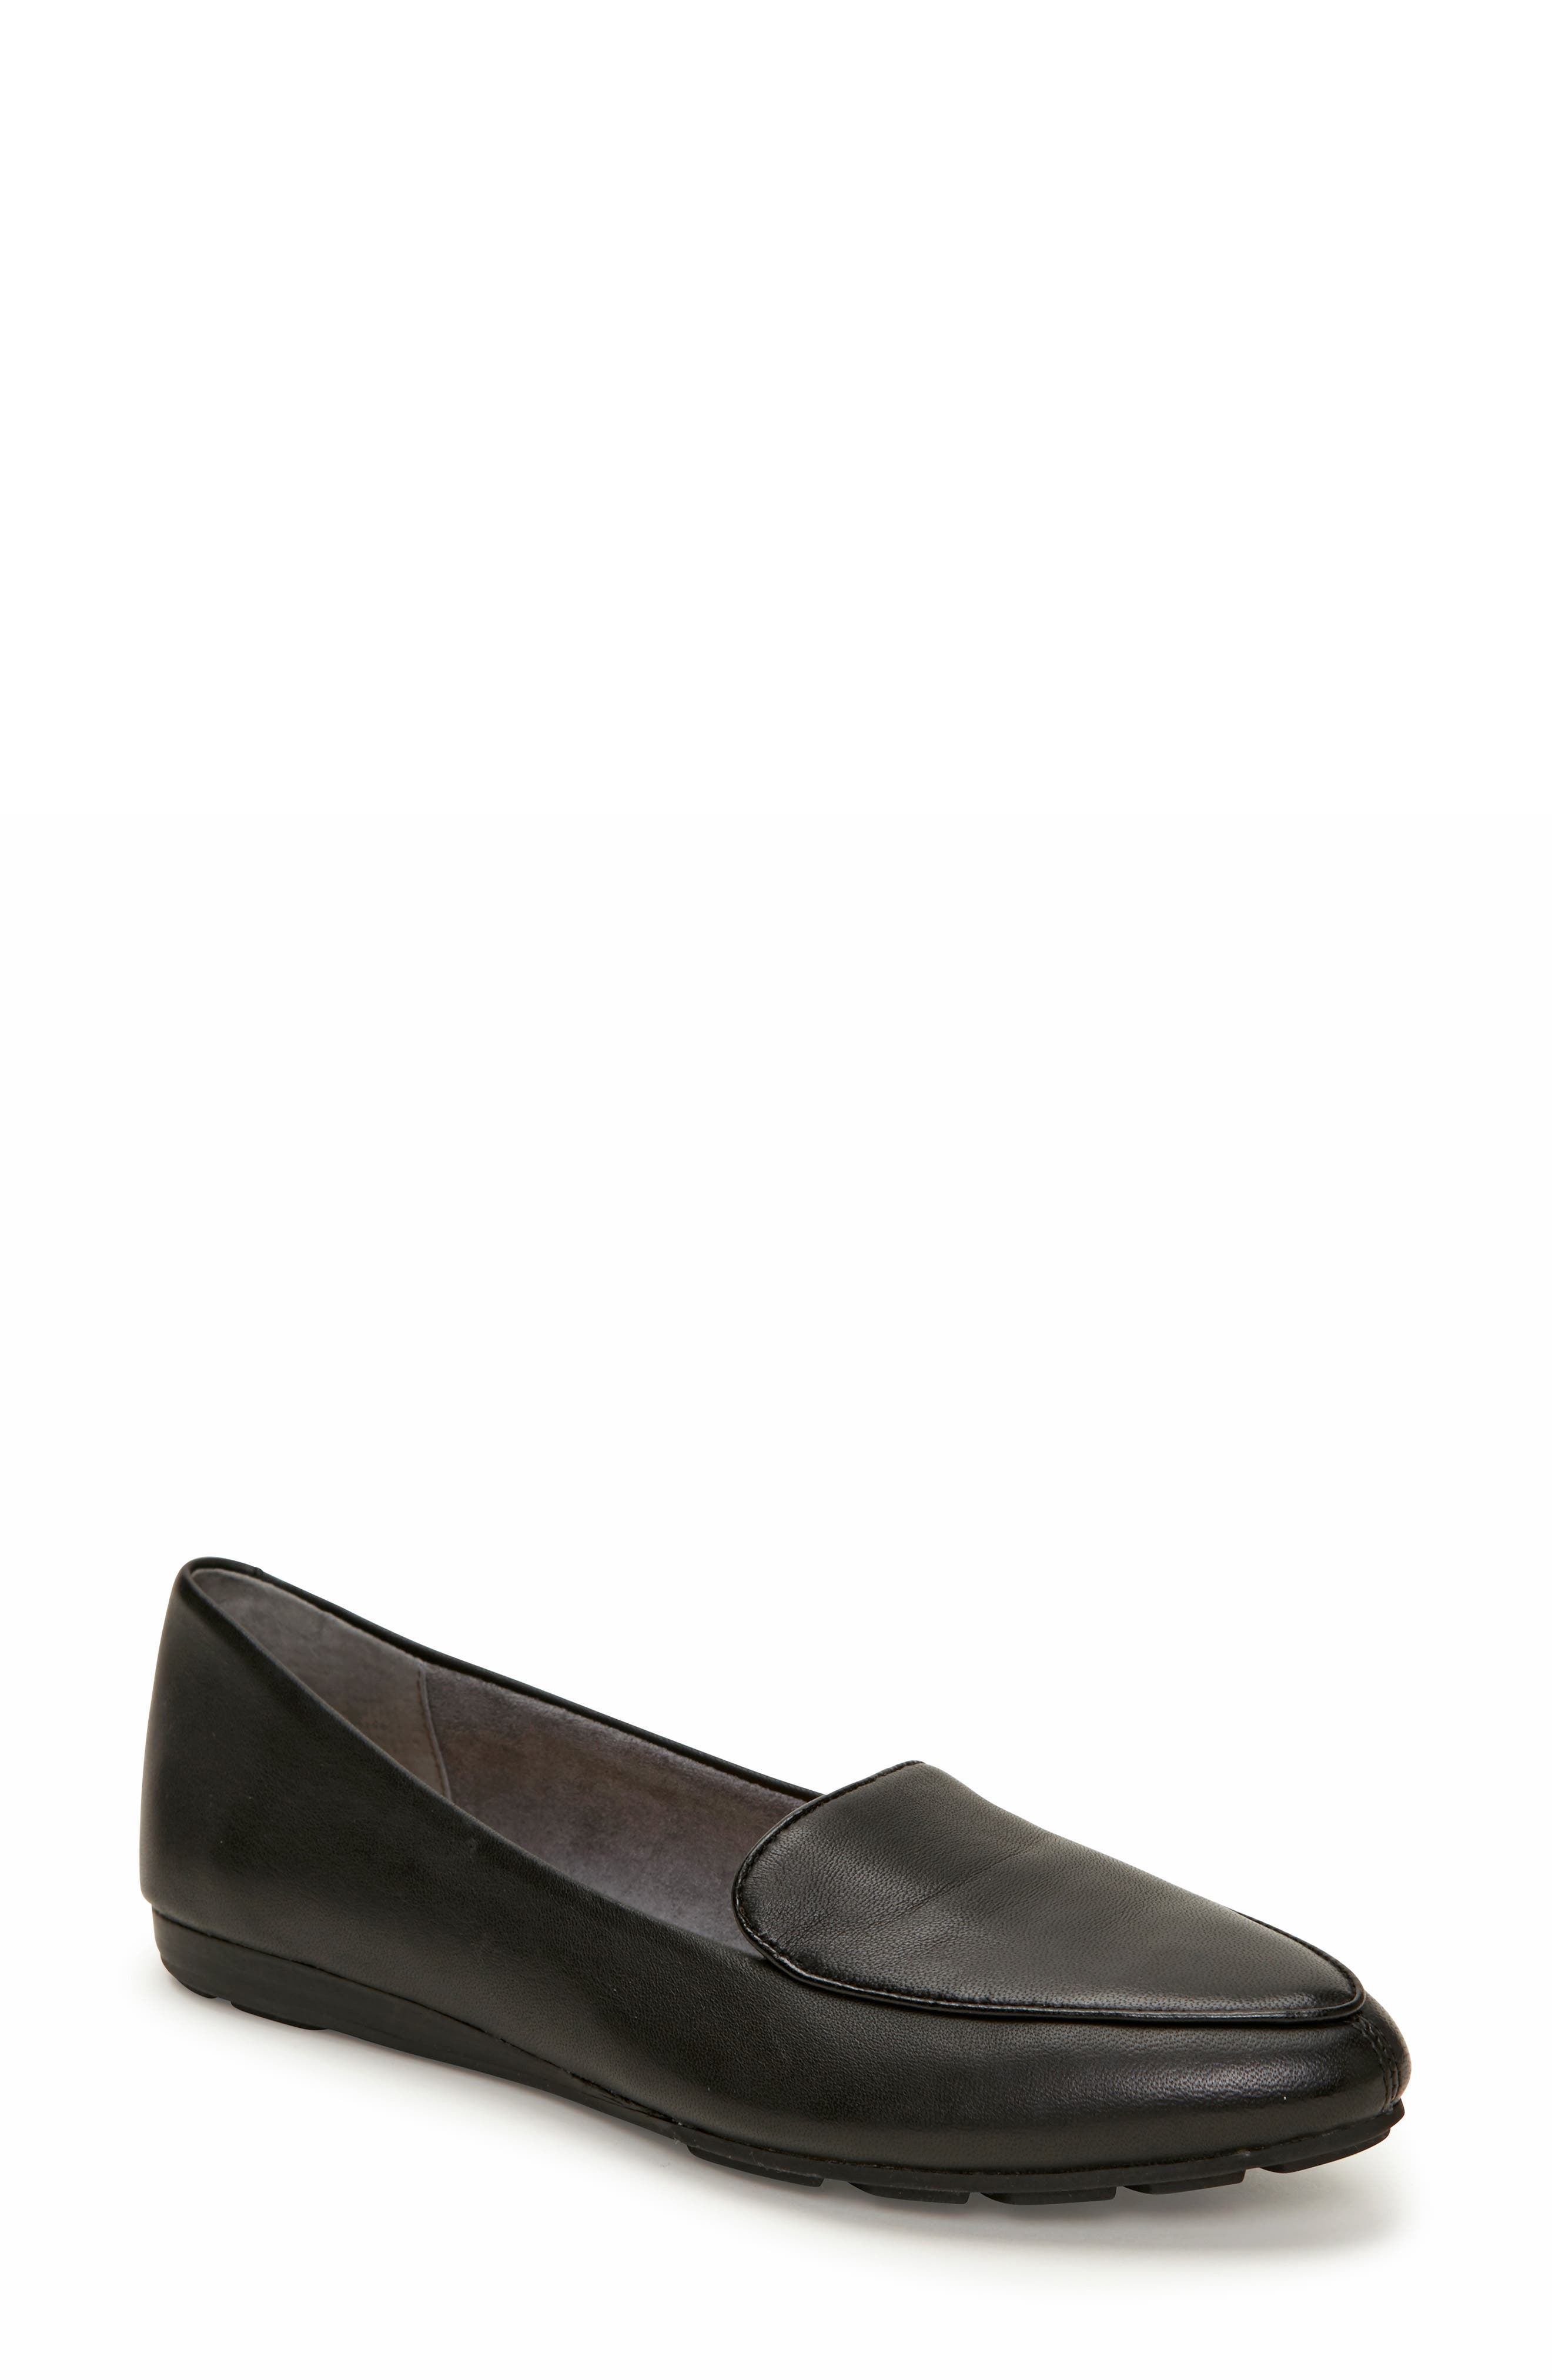 Image of Me Too Anissa Leather Flat Loafer